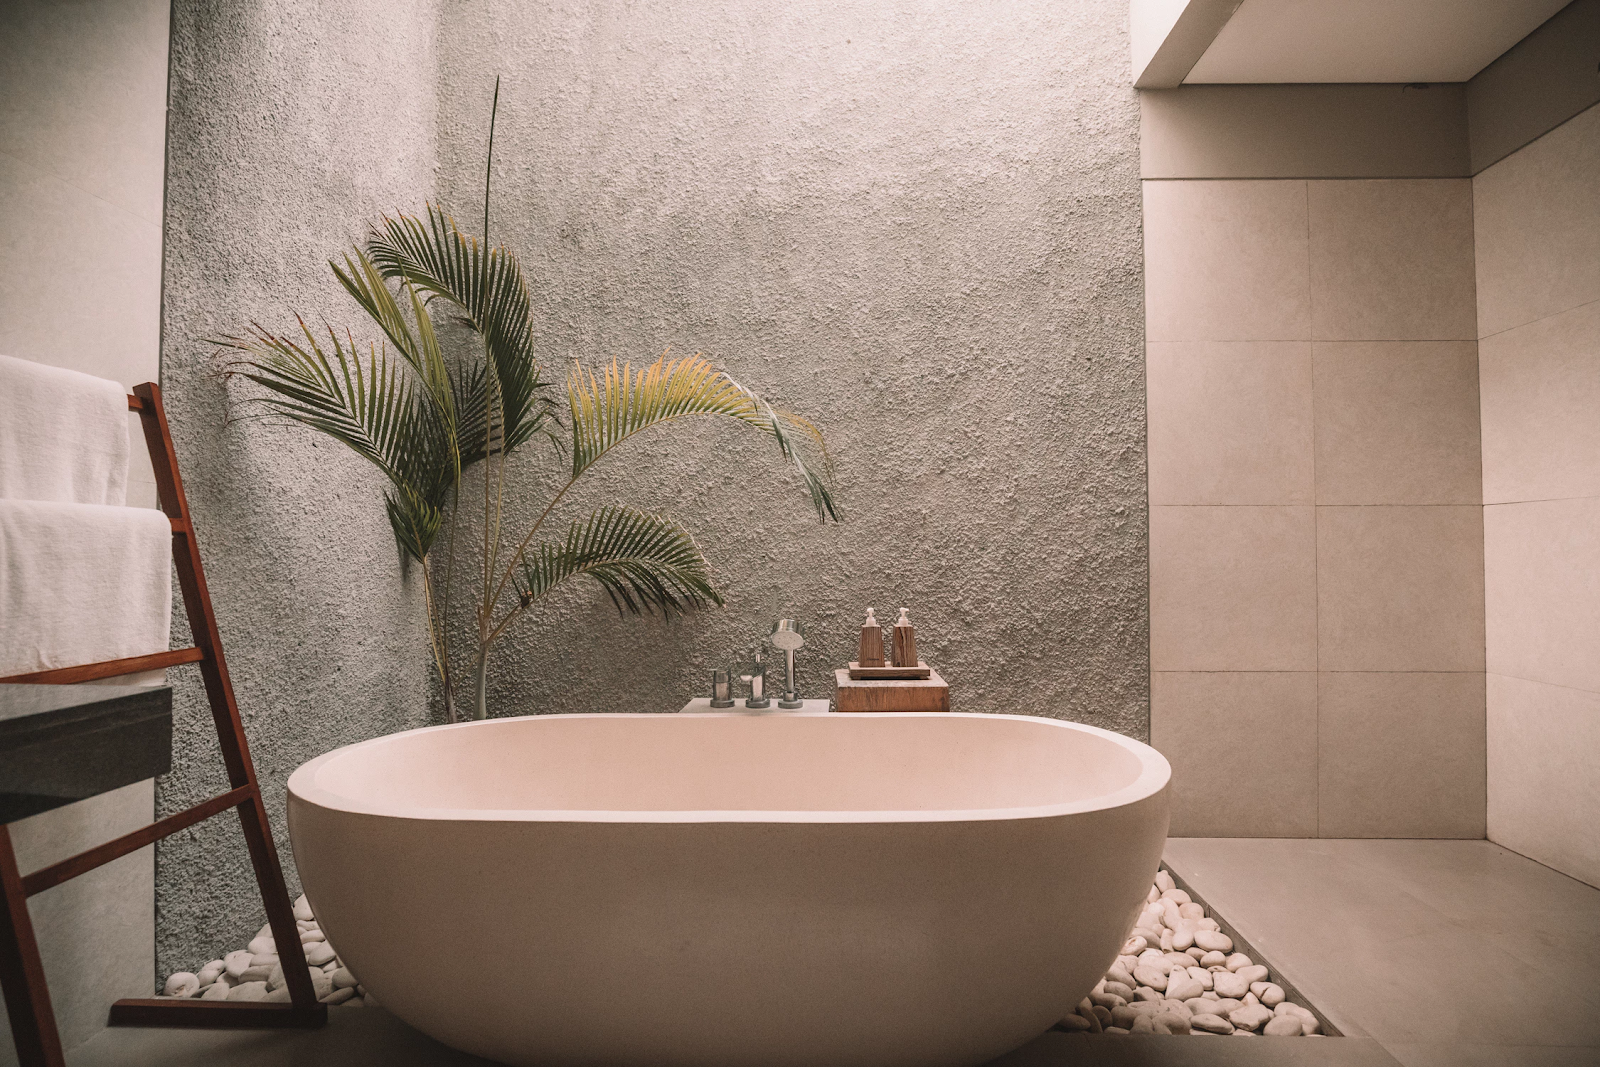 The 5 Hottest Bathroom Trends Of 2018 To Include In Your Remodel